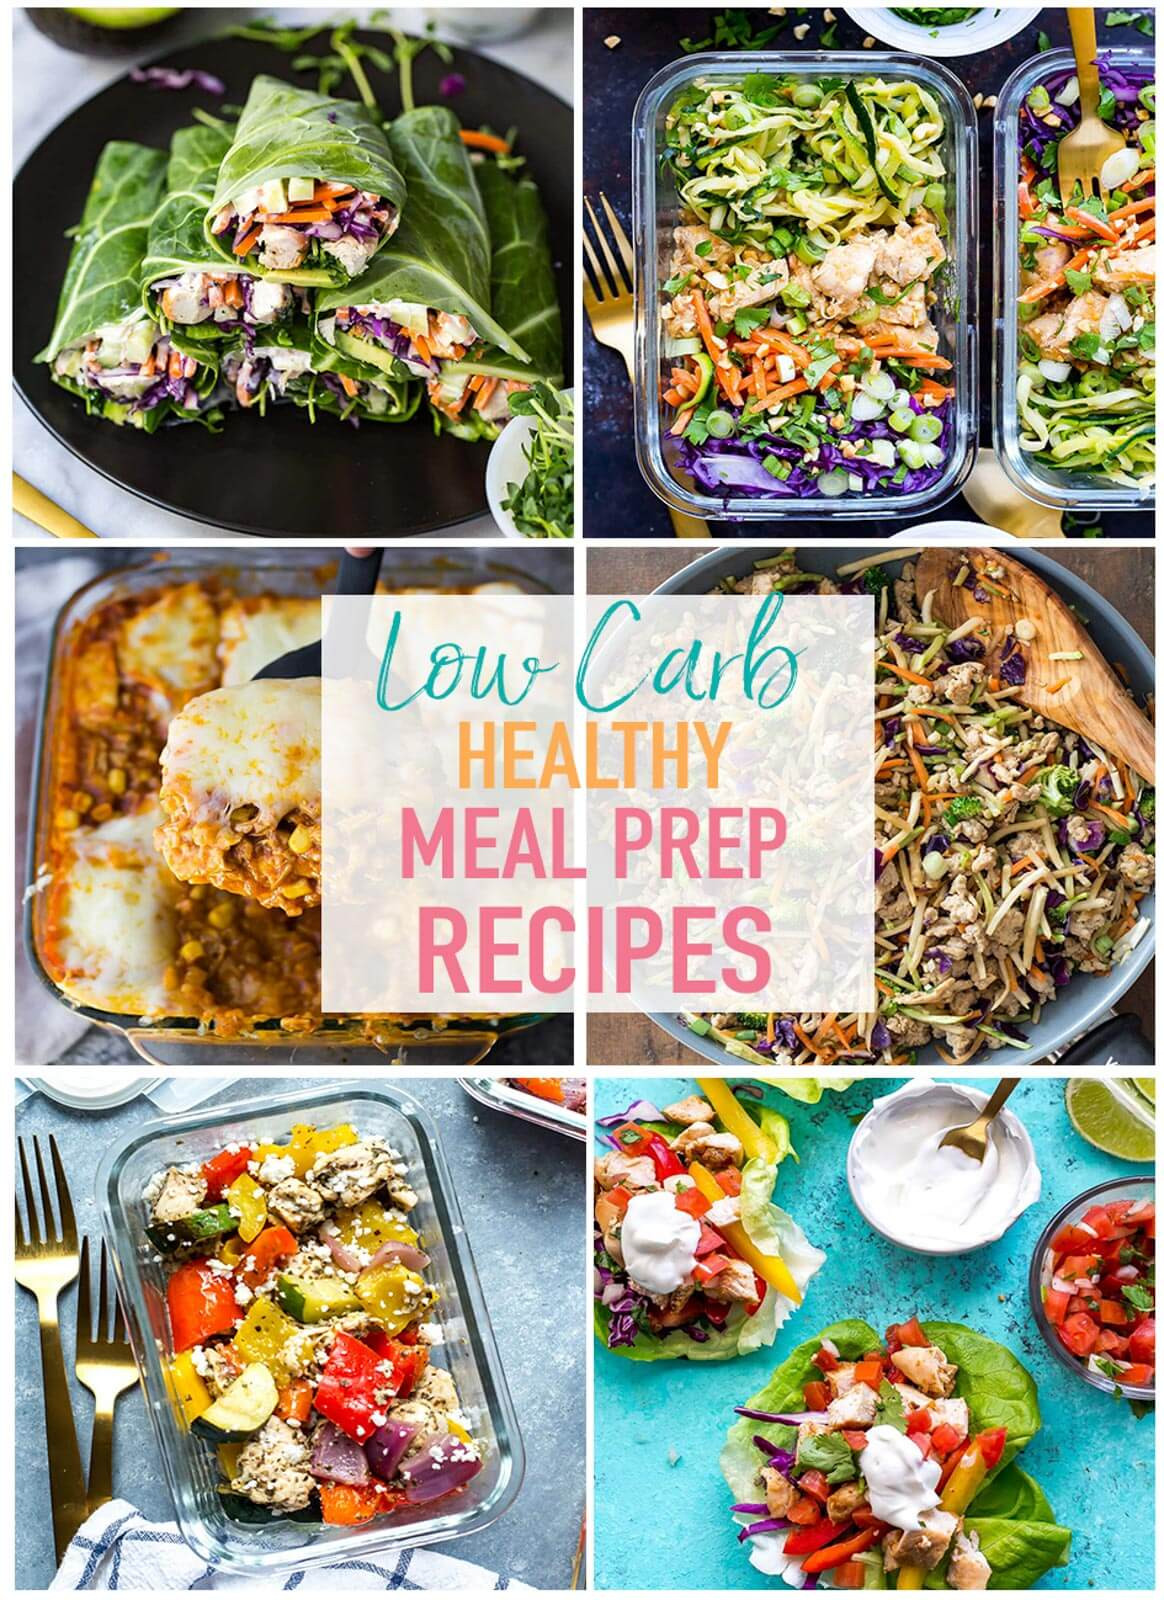 Low Carb Lunch Recipes  17 Easy Low Carb Recipes for Meal Prep The Girl on Bloor